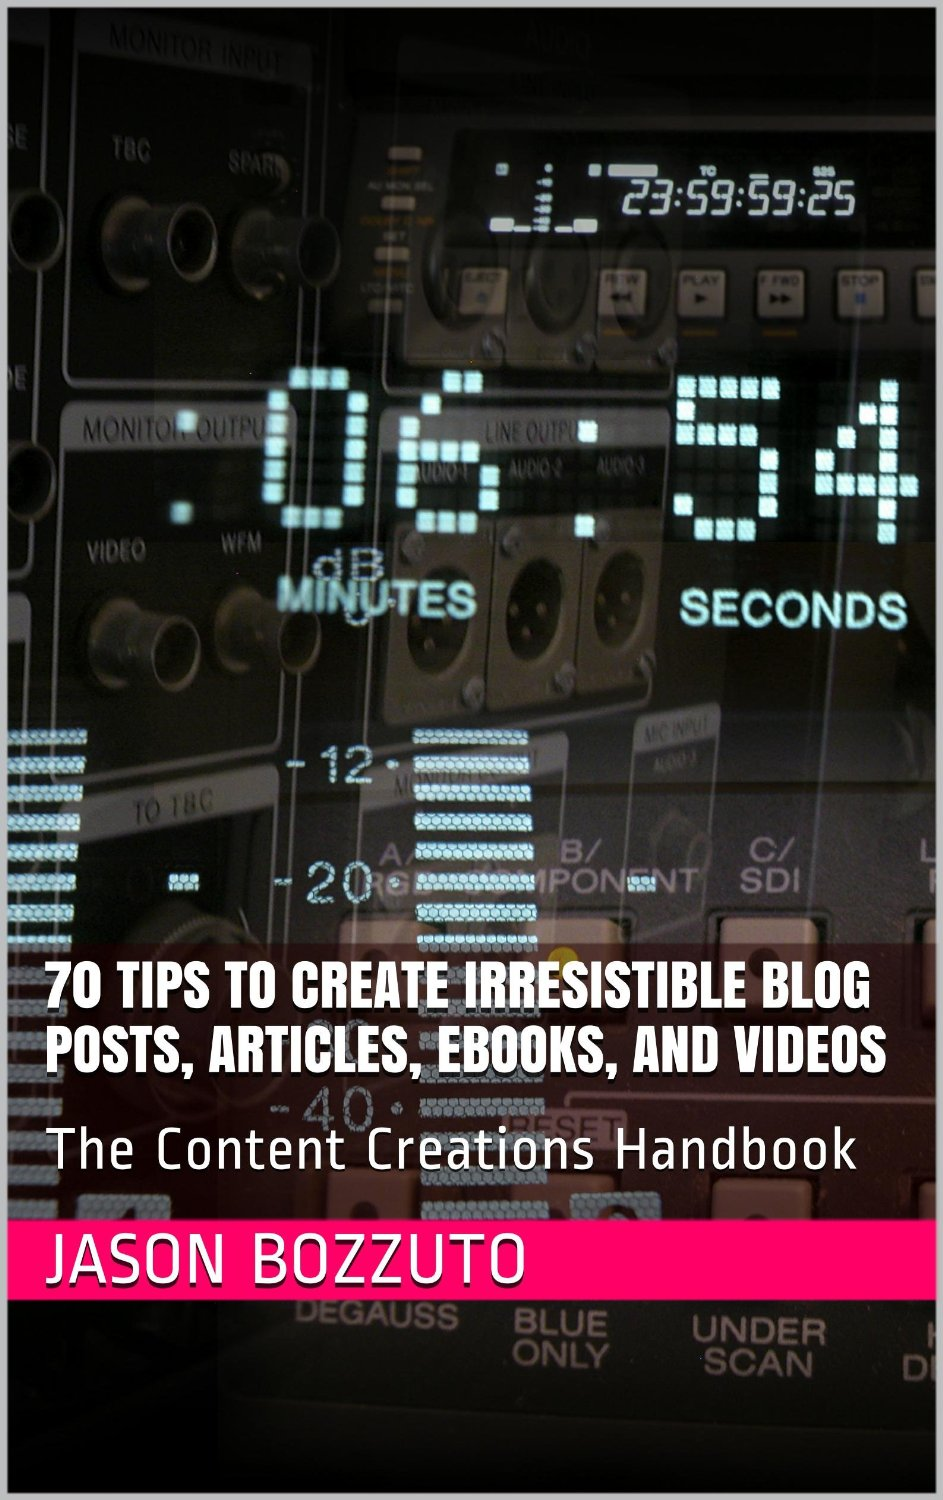 70 Tips To Create Irresistible Blog Posts, Articles, Ebooks, And Videos: The Content Creations Handbook free download